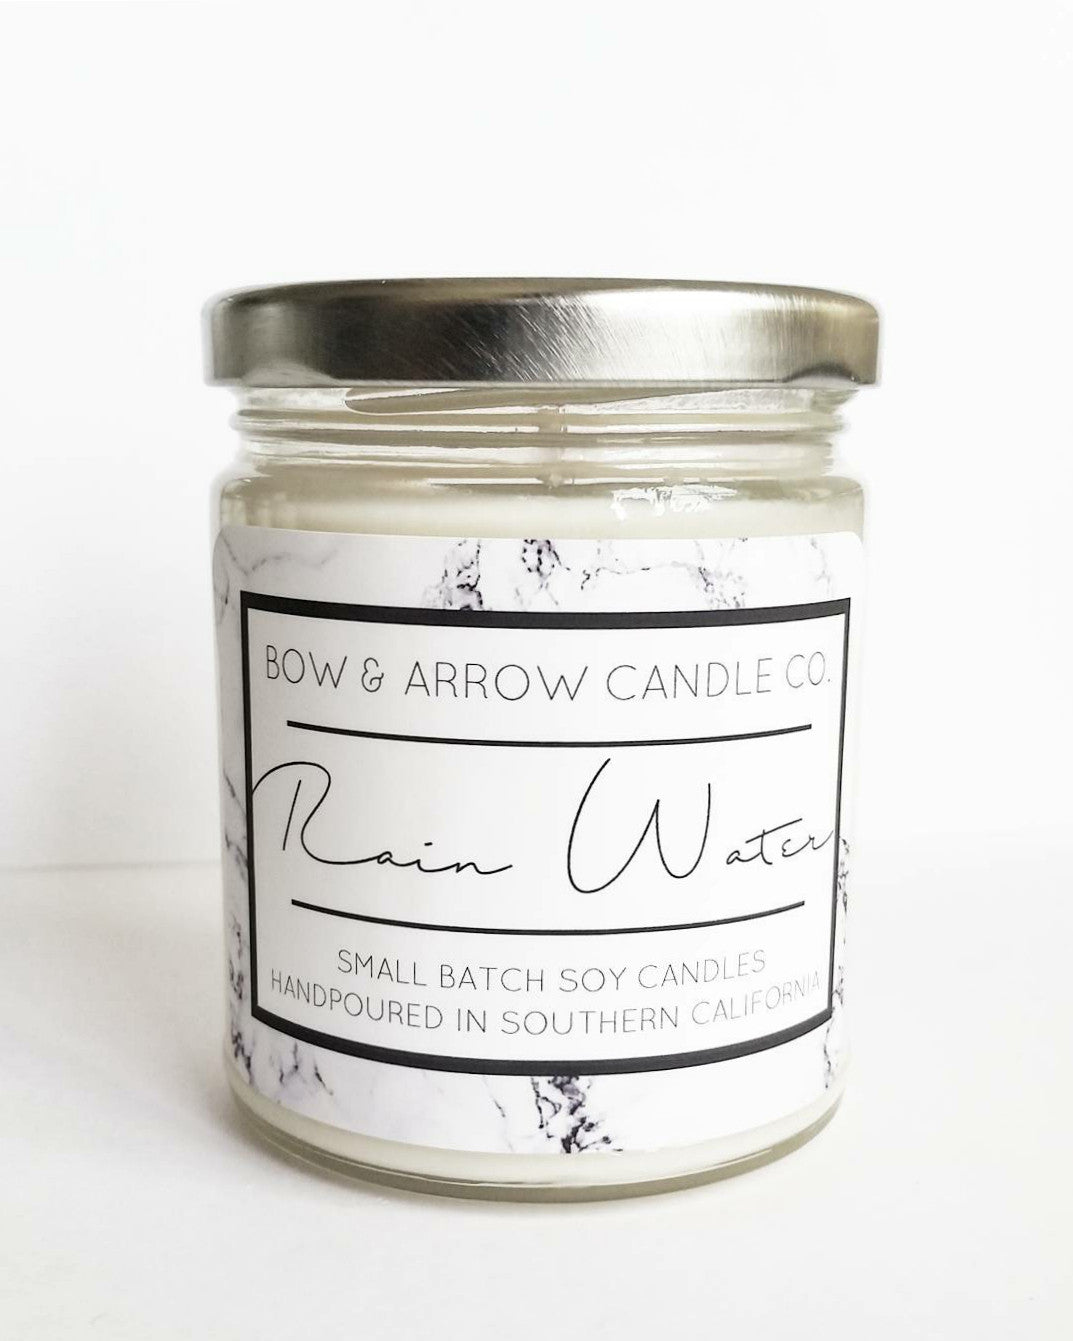 rain water scented floral soy candles